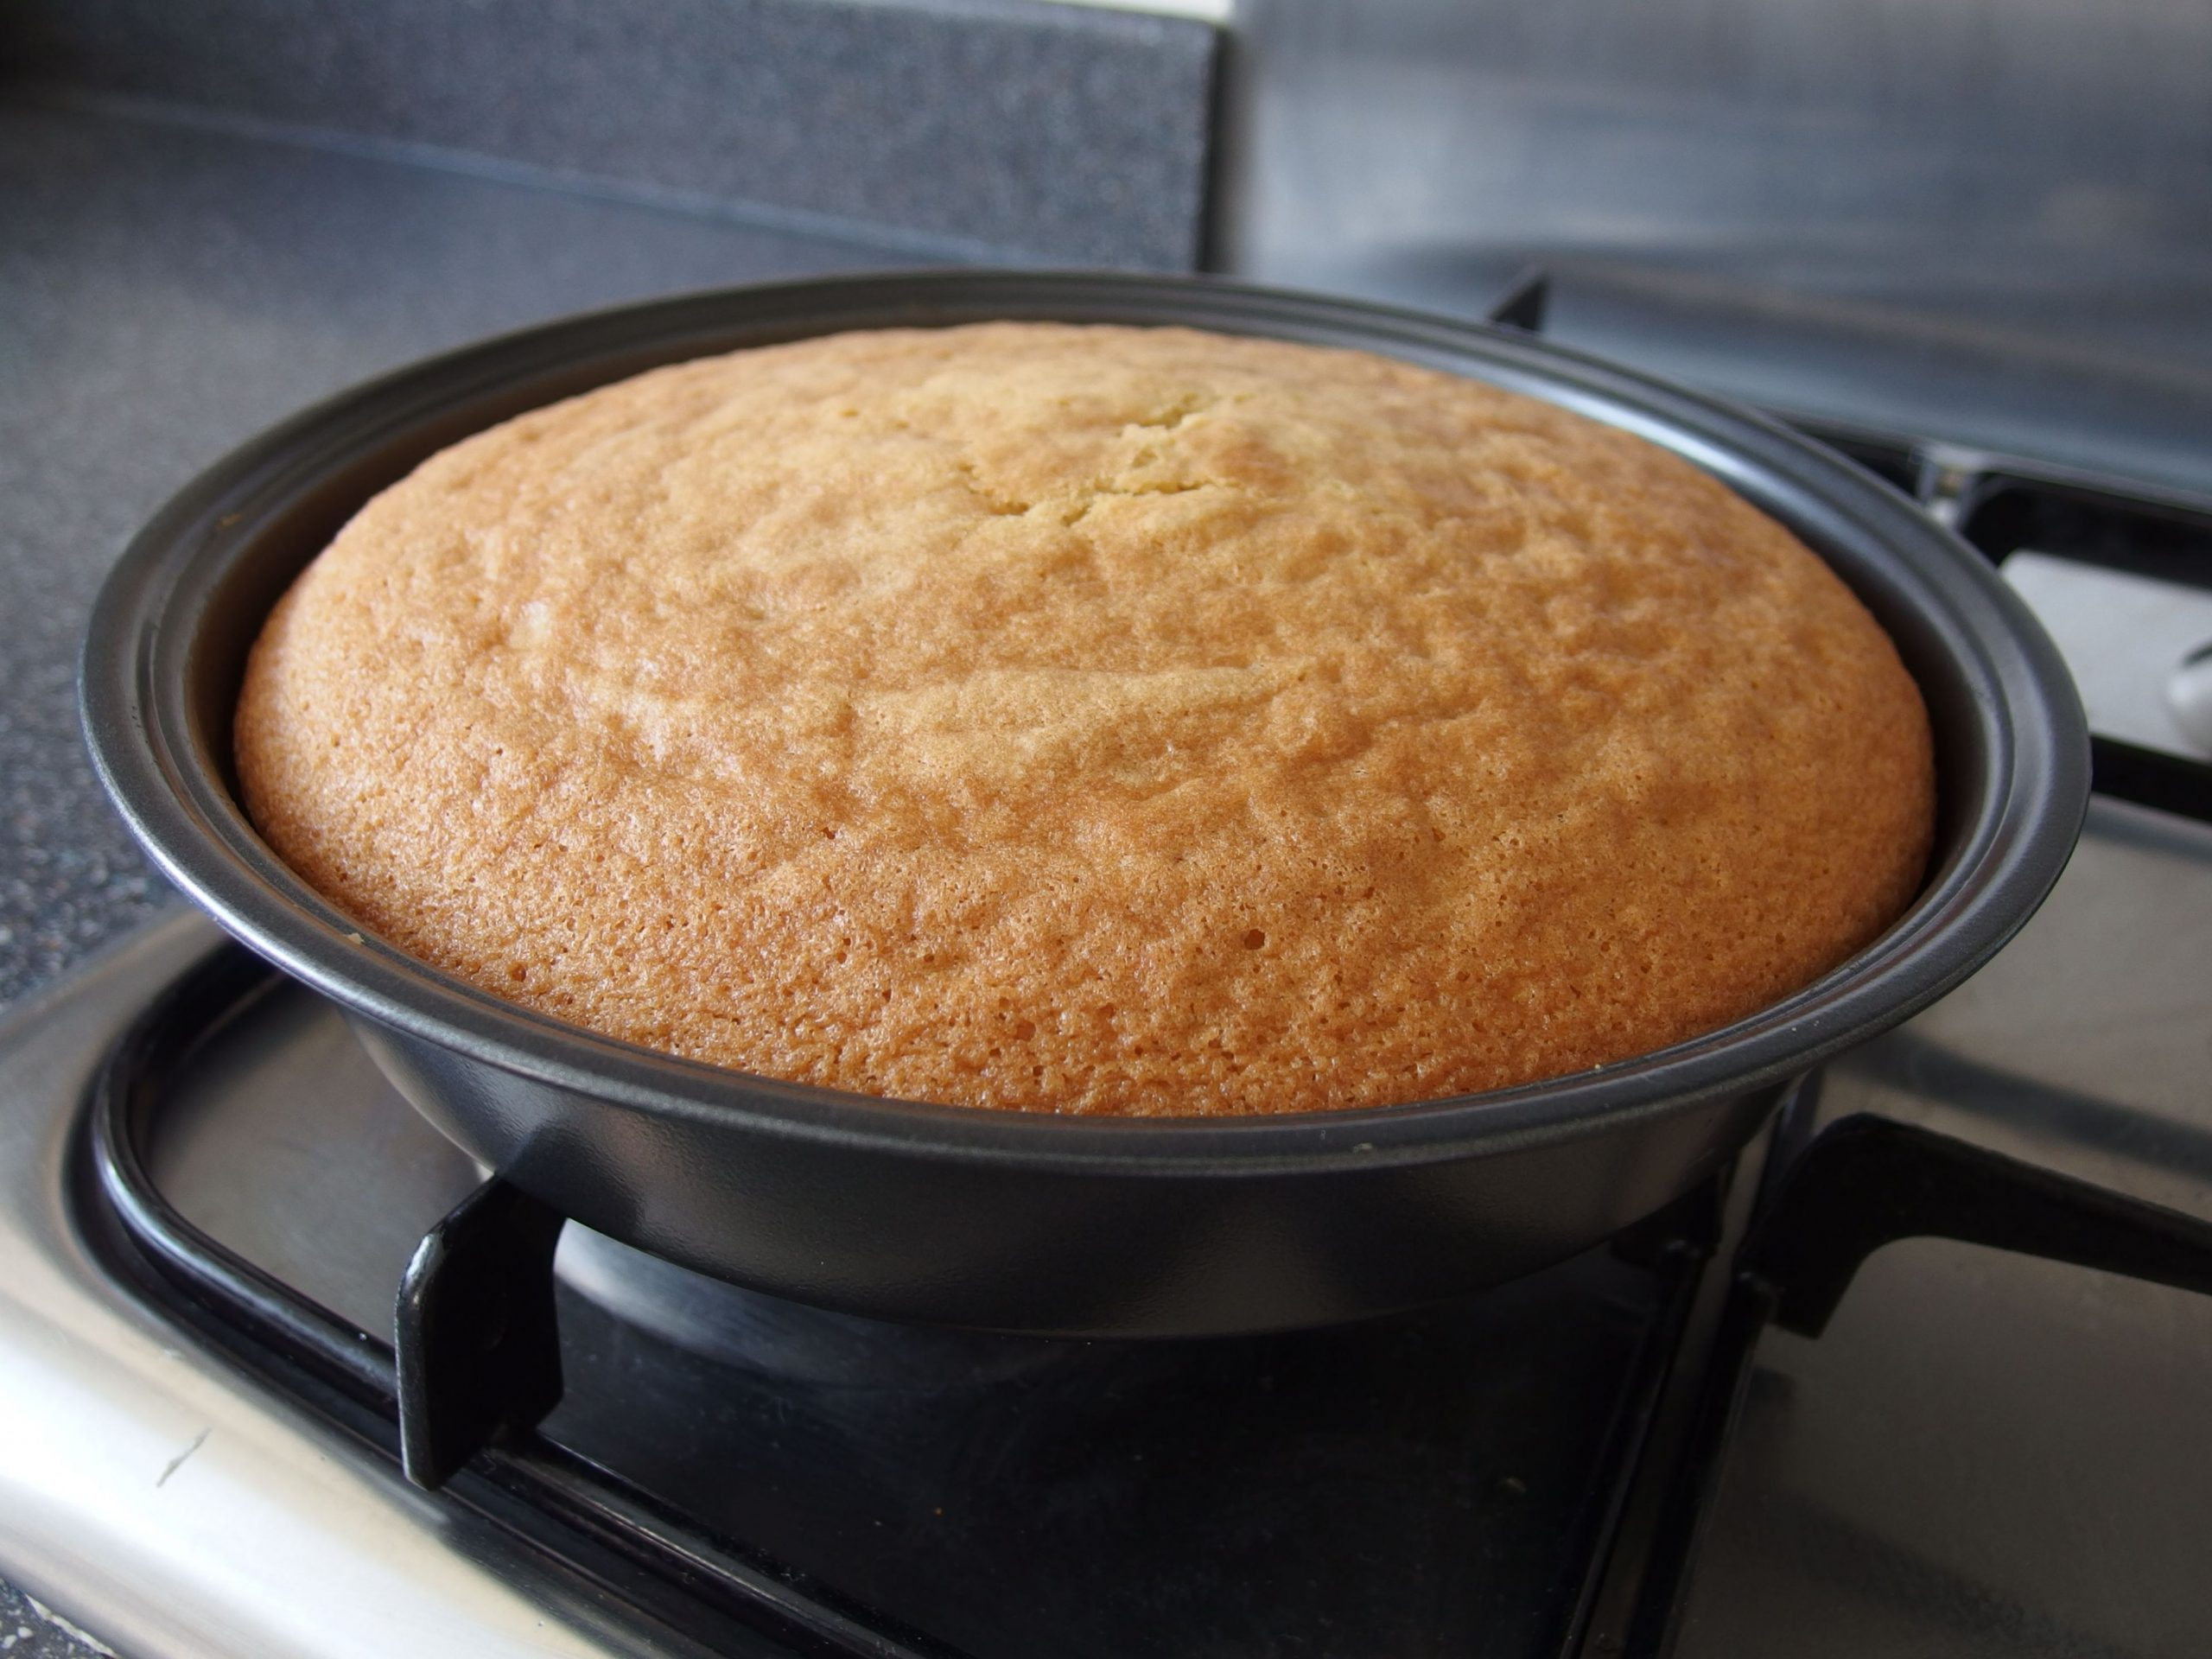 Basic plain sponge cake recipe - All recipes UK - Cake Recipes Plain